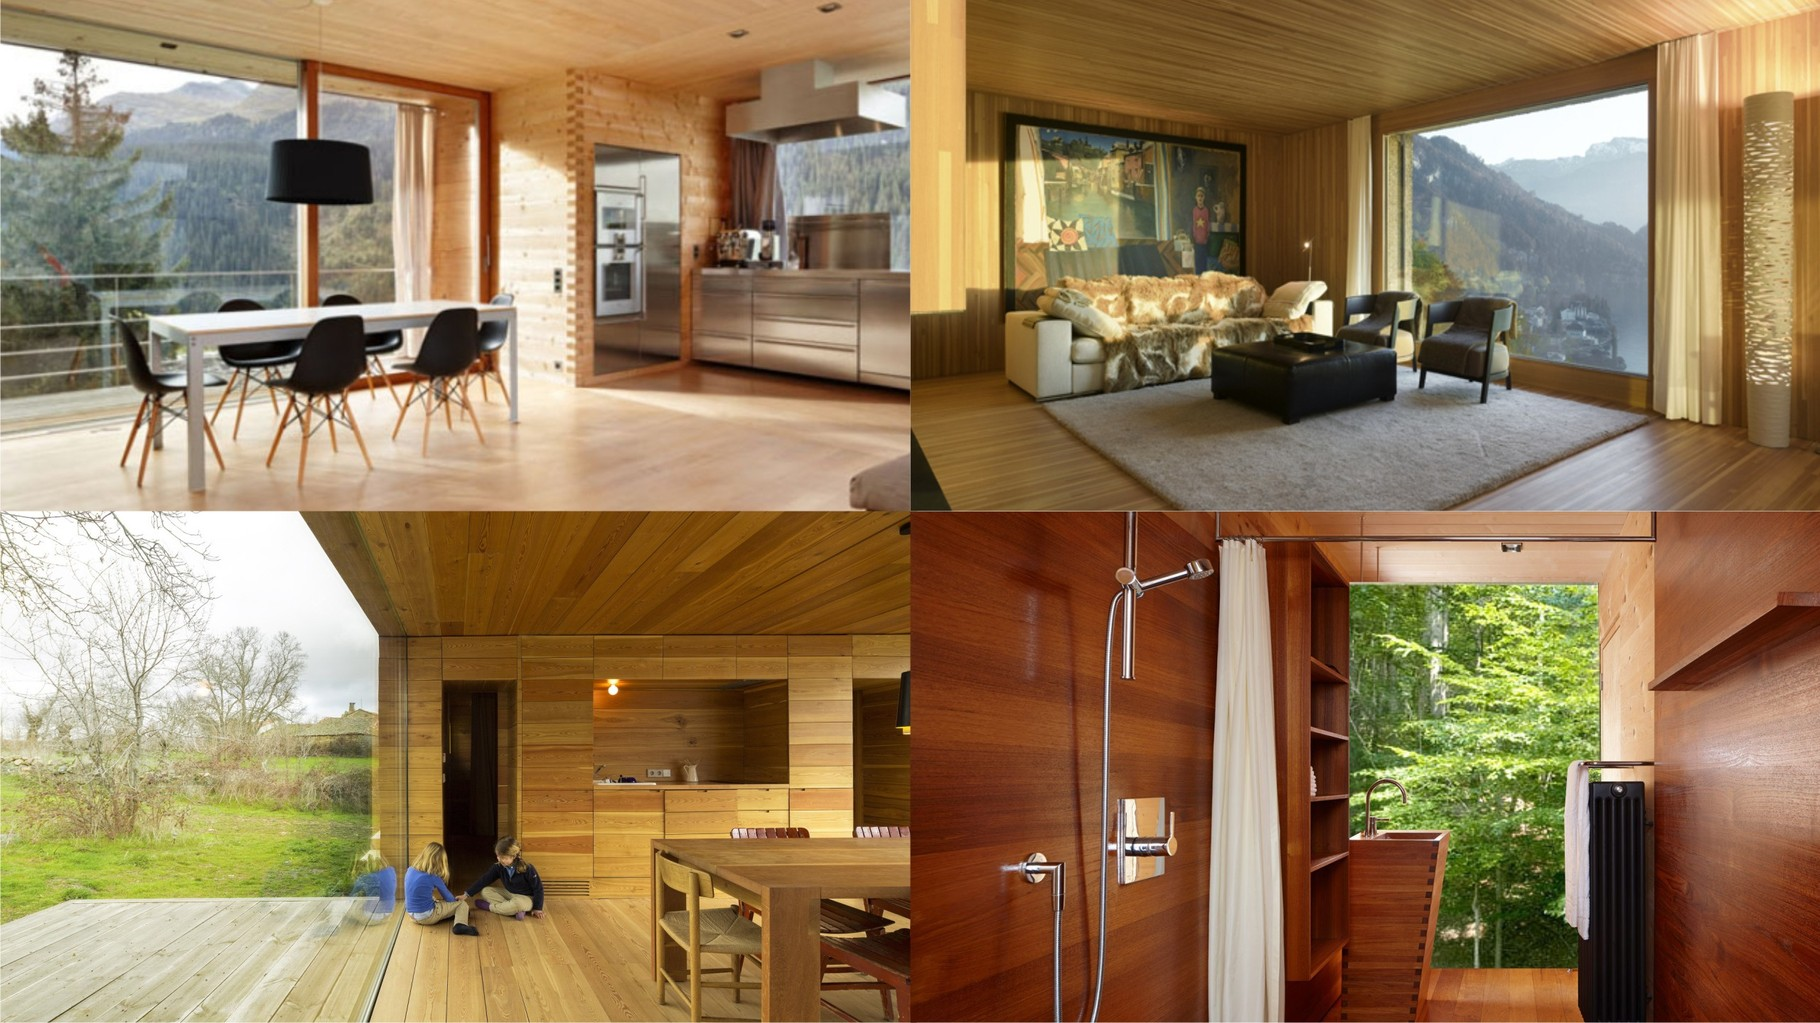 Visual OAS1S™: Rustic wooden cabin-like interiors with large windows towards the surroundings.